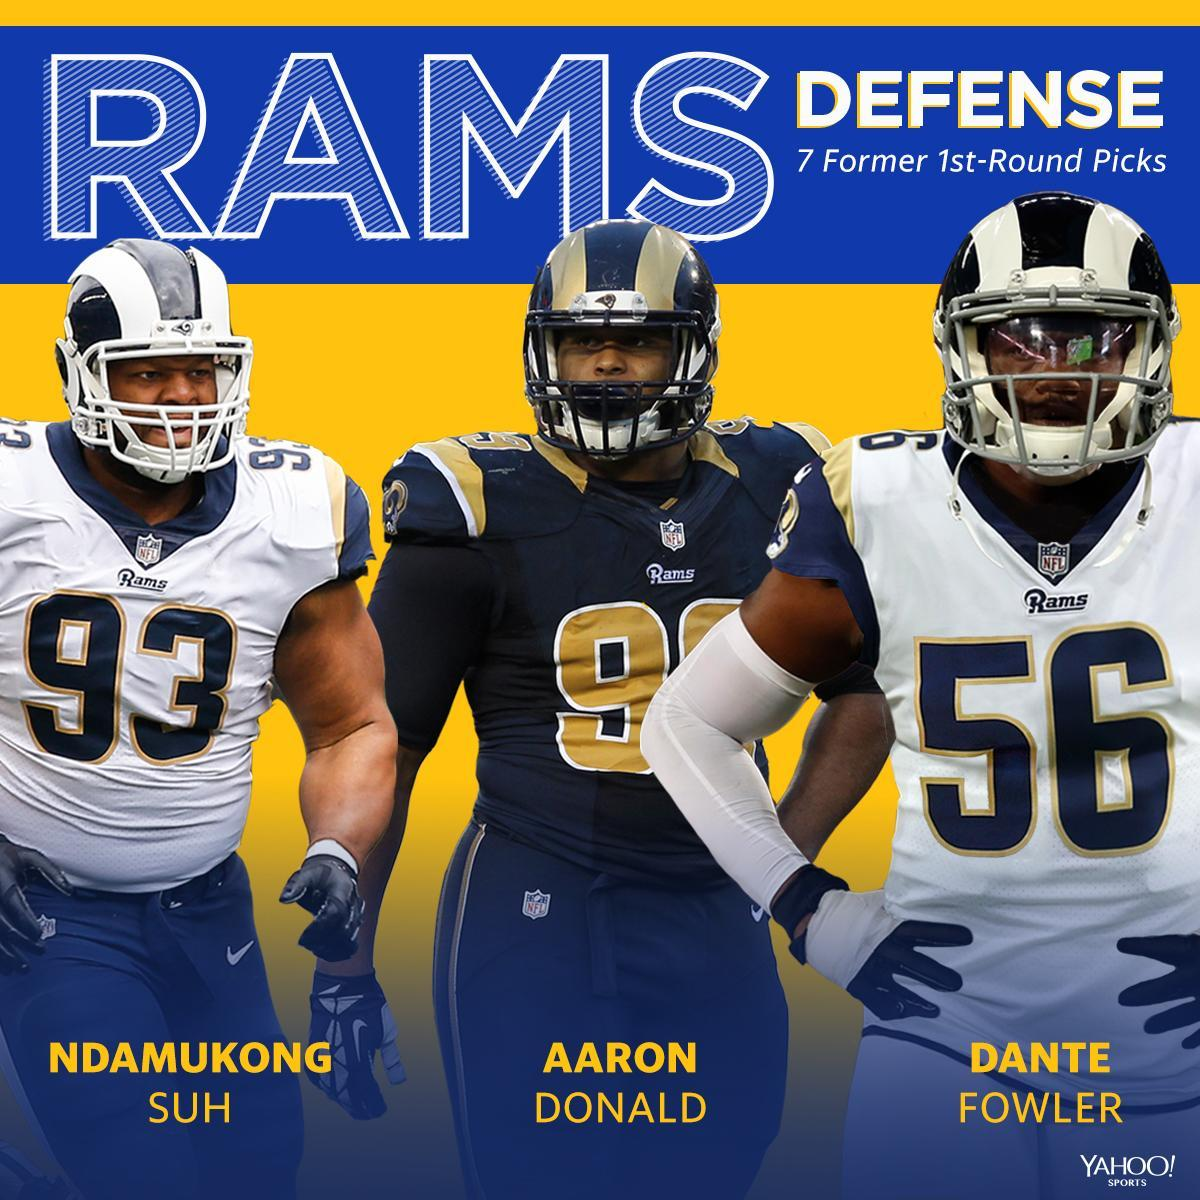 Dante Fowler joins a loaded defense in Los Angeles. (Yahoo Sports)